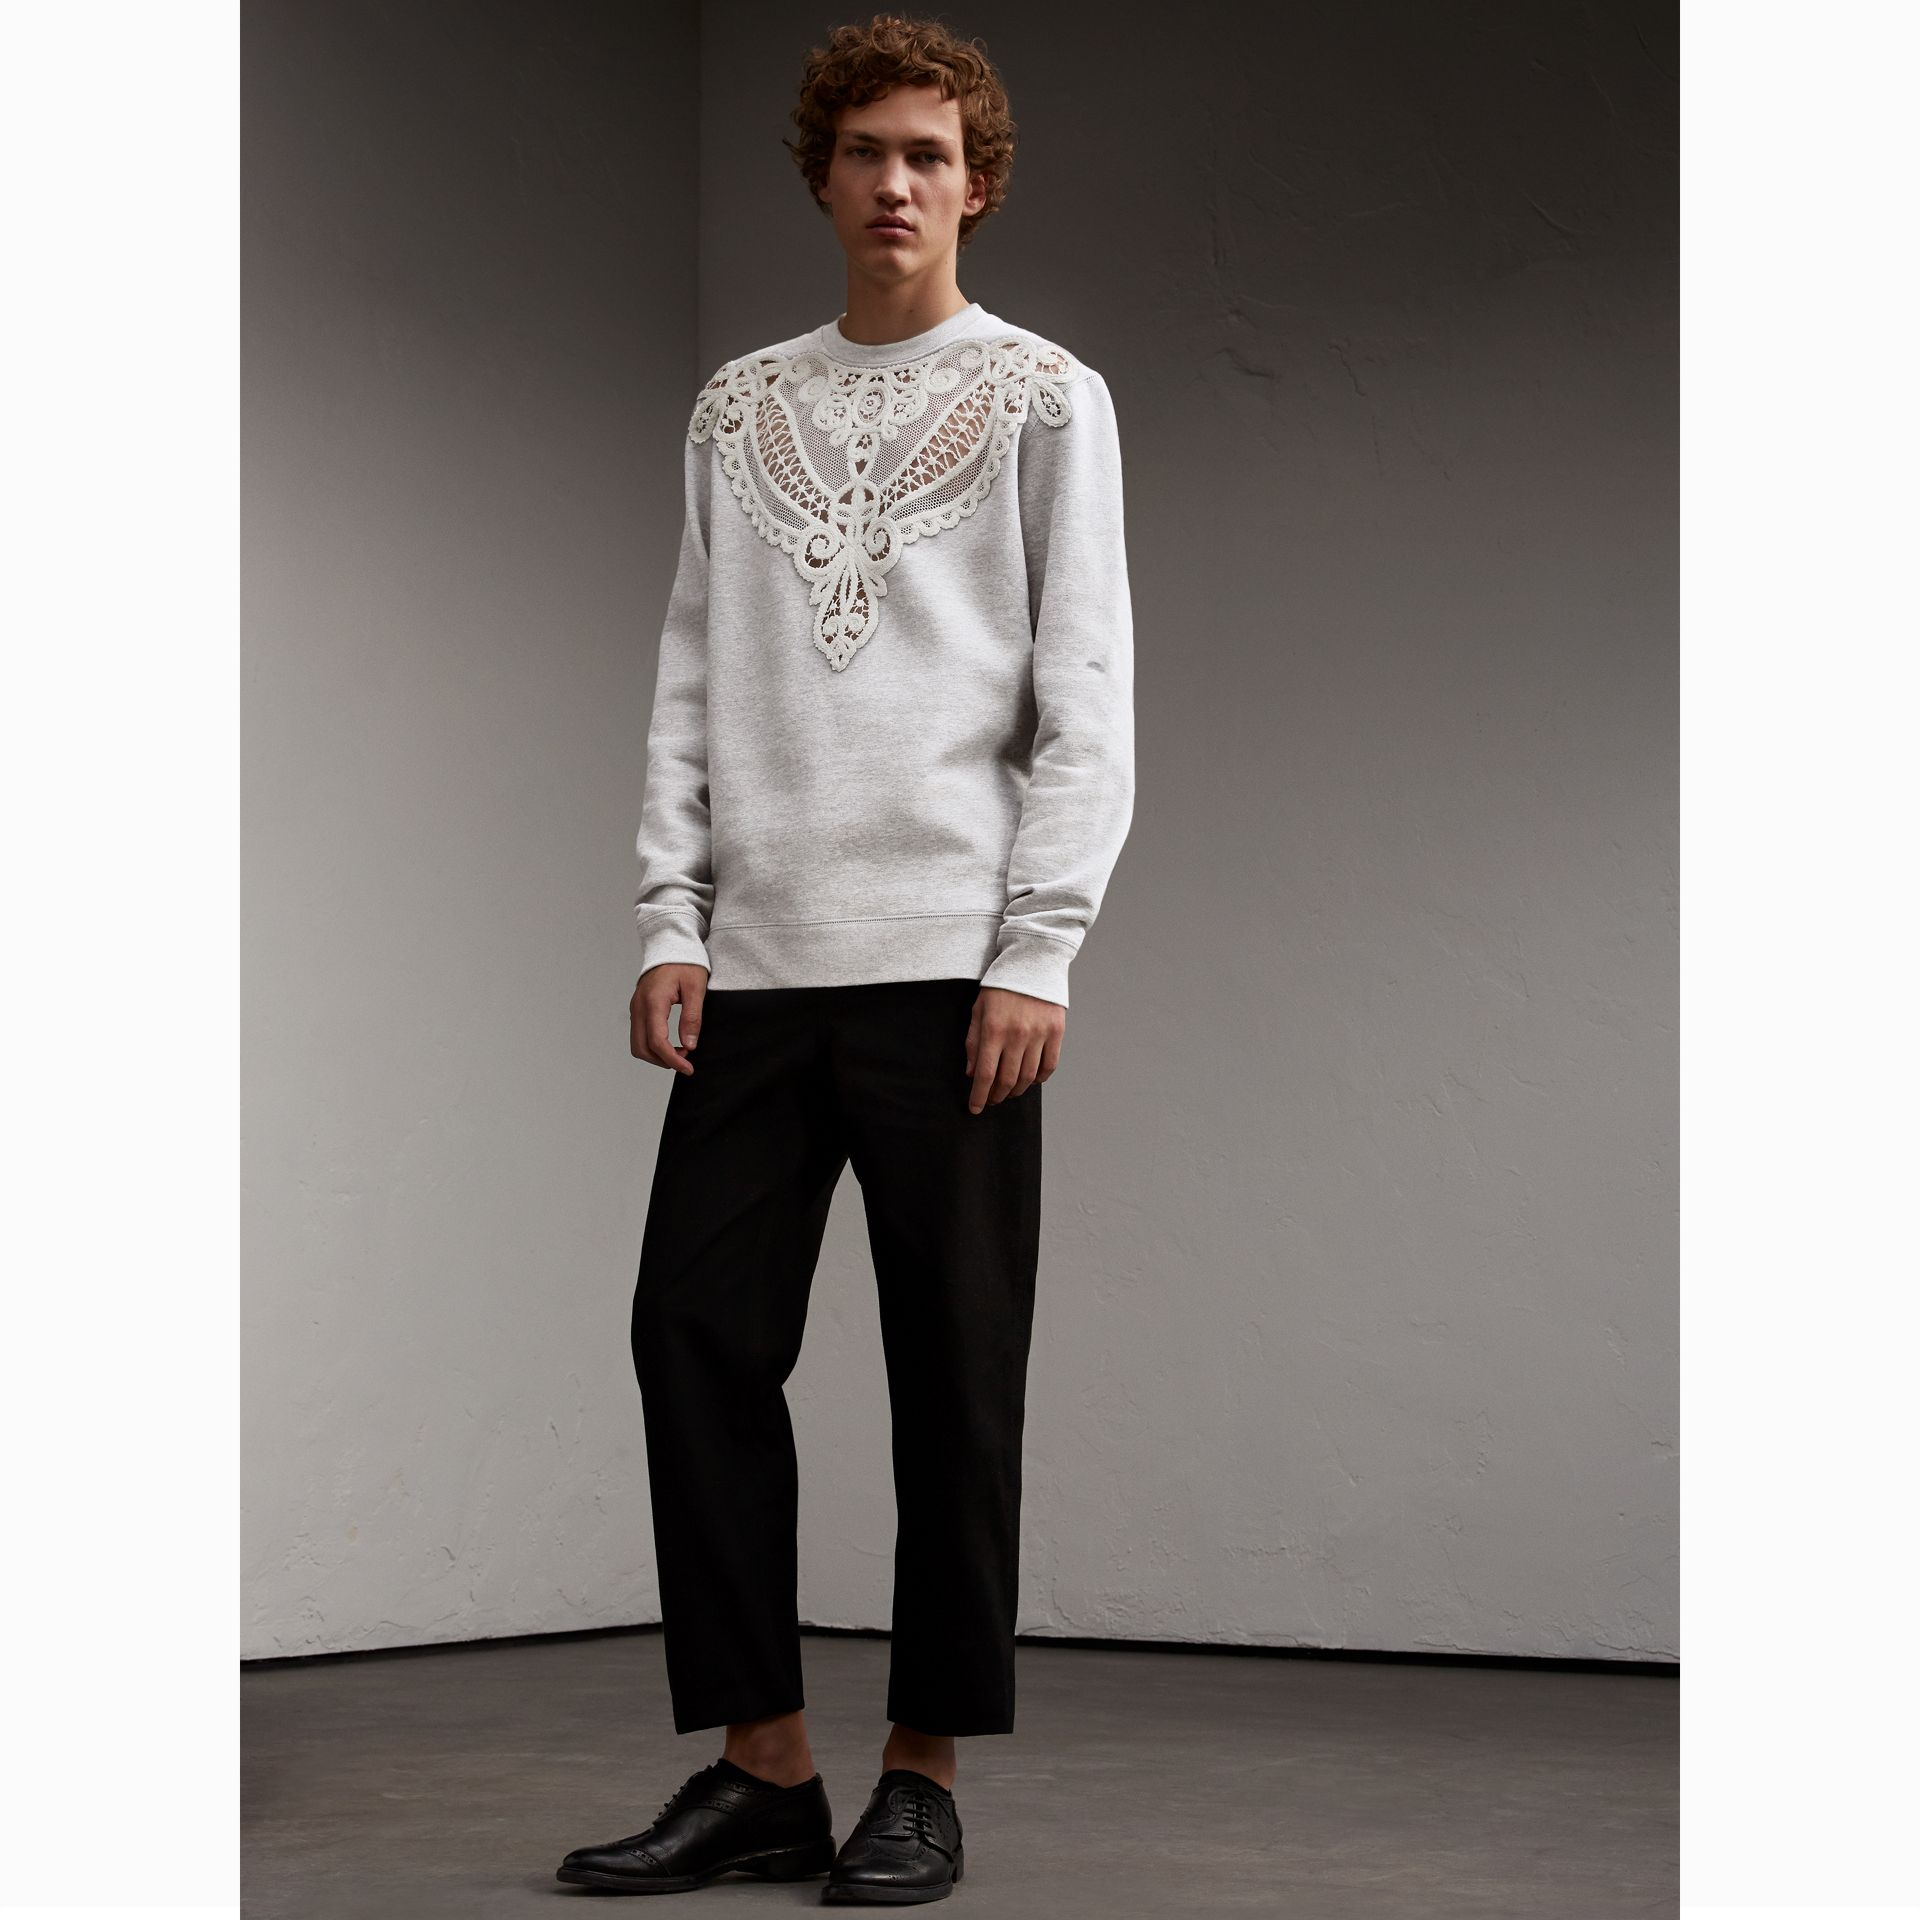 Unisex Lace Cutwork Sweatshirt in Light Grey Melange - Men | Burberry - gallery image 7